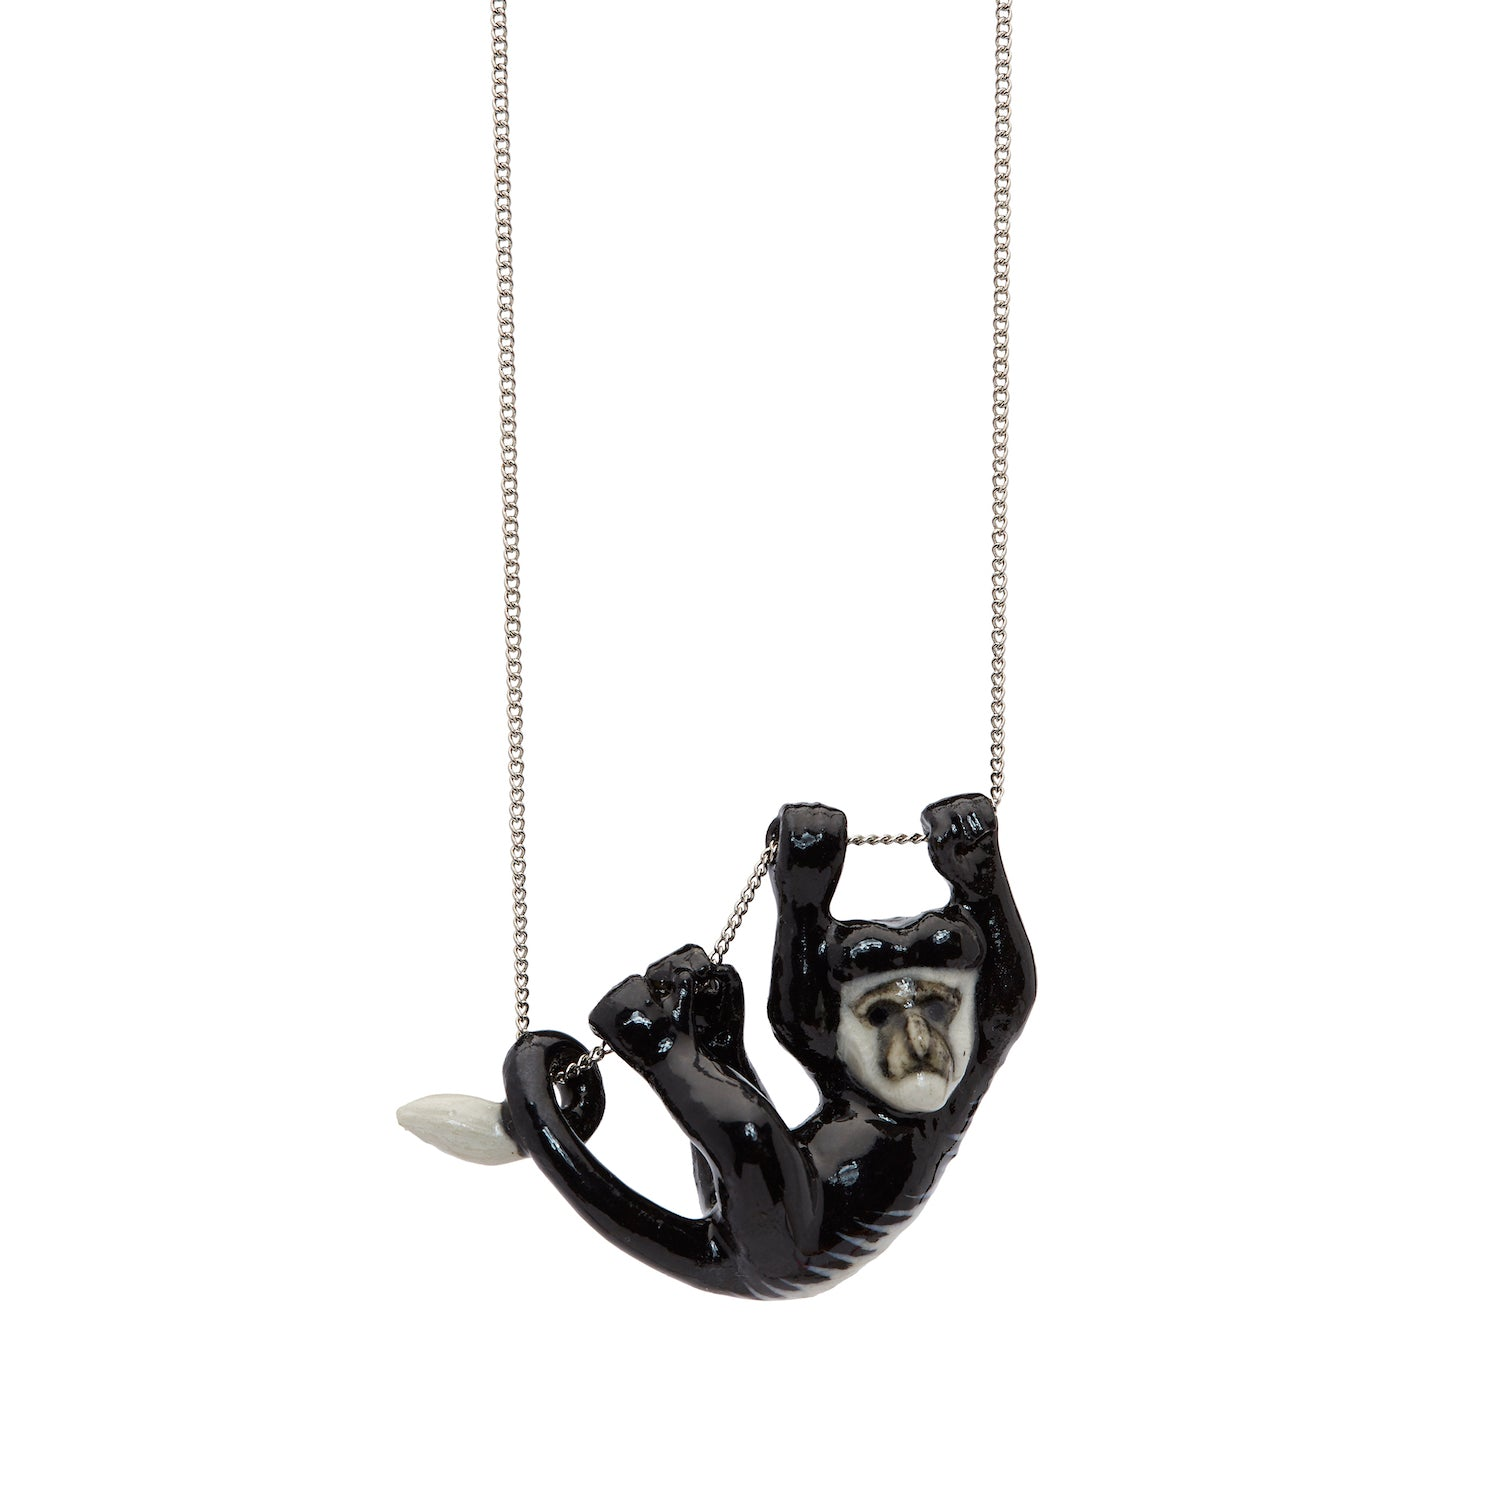 Colobus Monkey Necklace